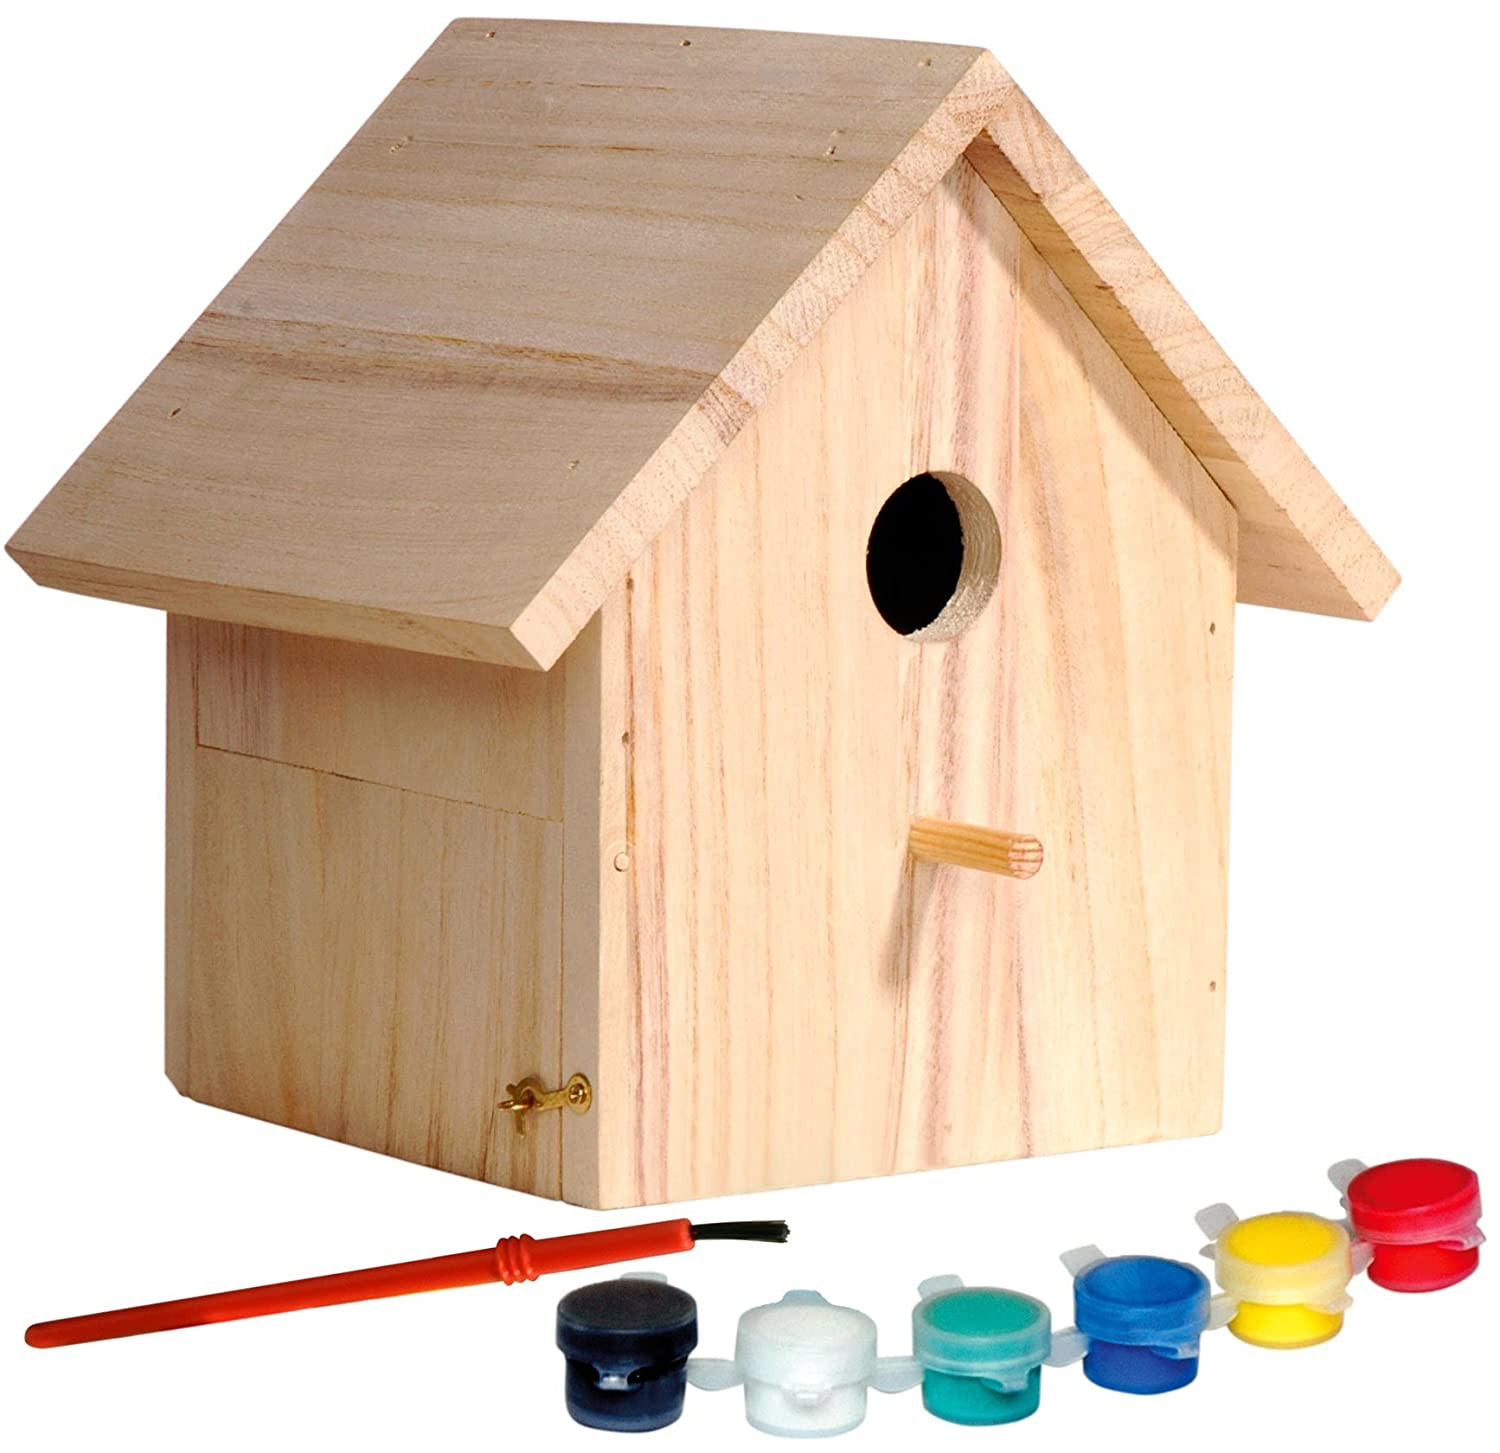 Dobar 22368FSC Decorative FSC-Certified Spruce Wood Bird House - Craft Set for Children to Build and Paint Themselves with Paintbrush, Sponge and Stencil